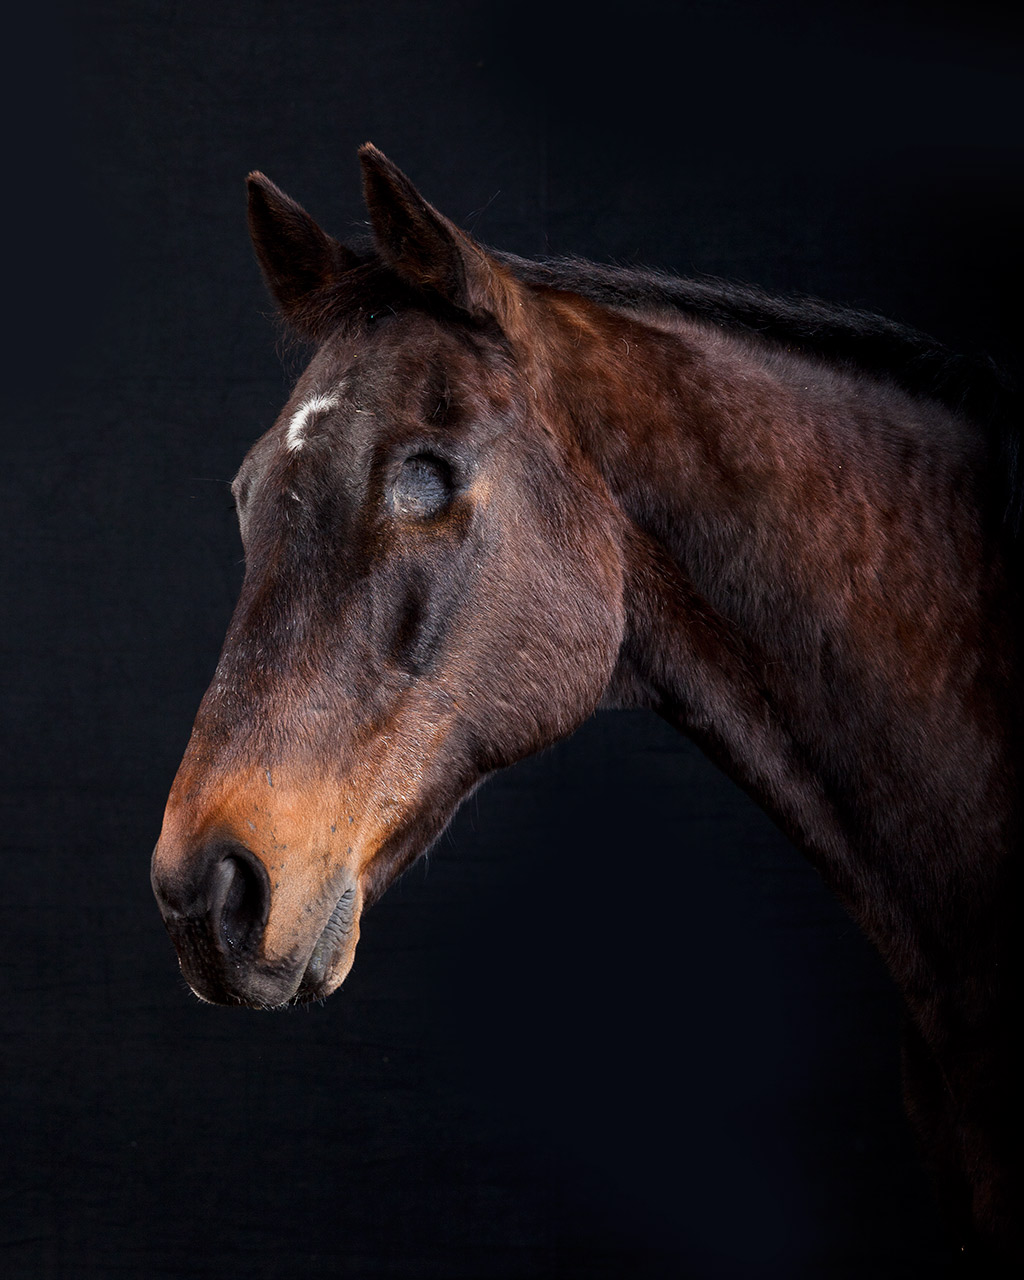 Blind horse fine art photograph by animal photographer, Peter Samuels